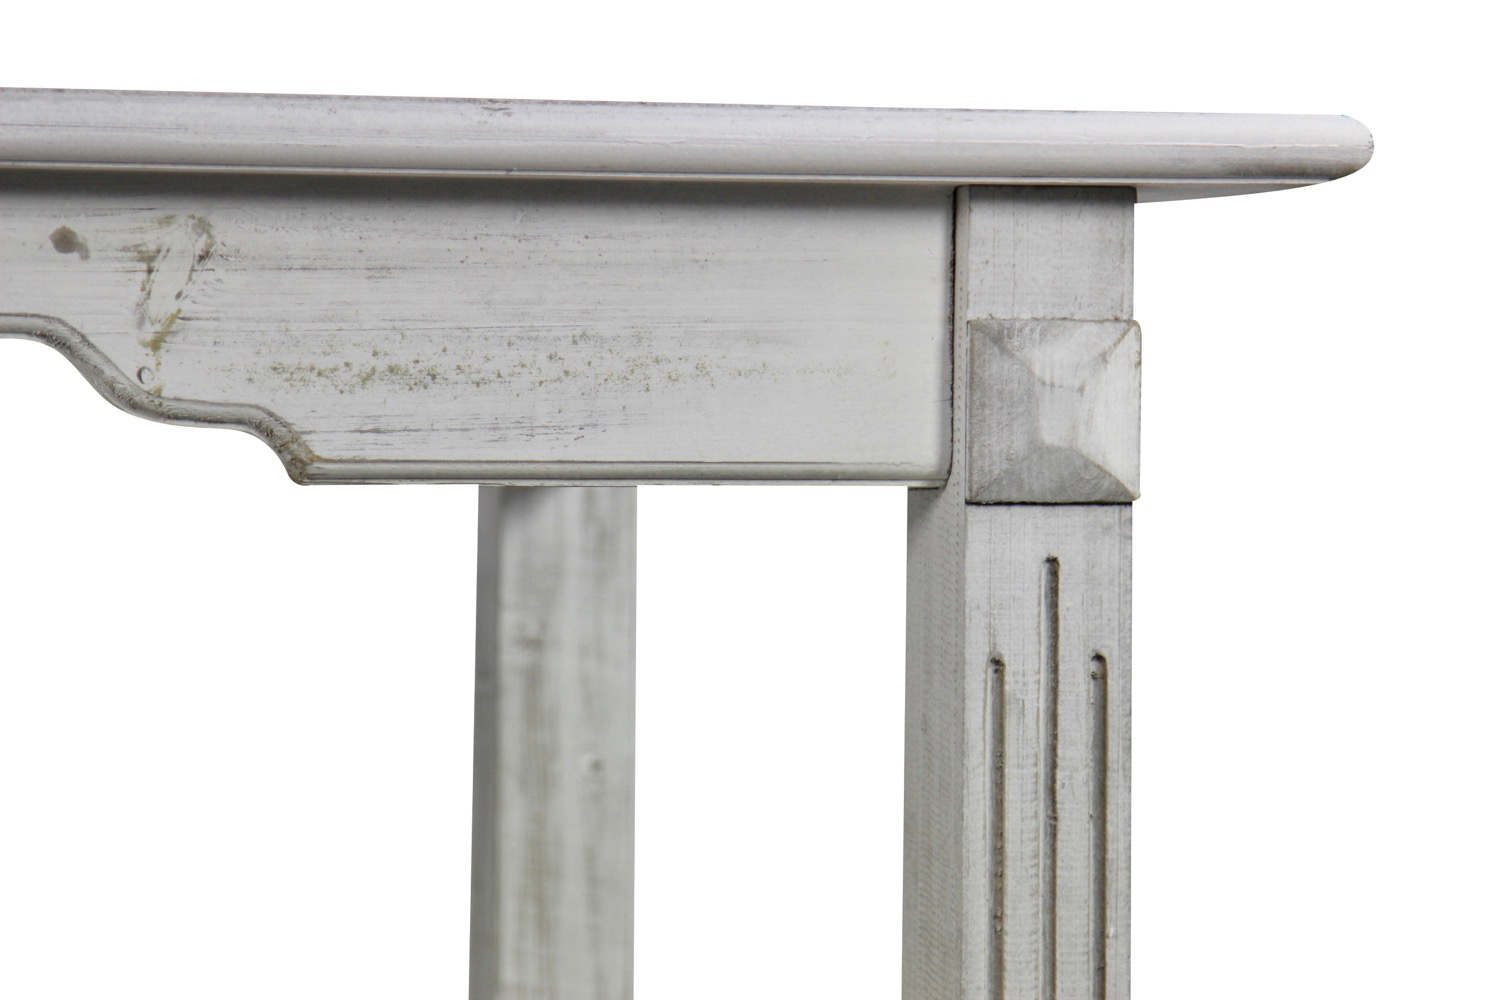 TABLE BOIS CERUSE BLANC 180x905x815cm